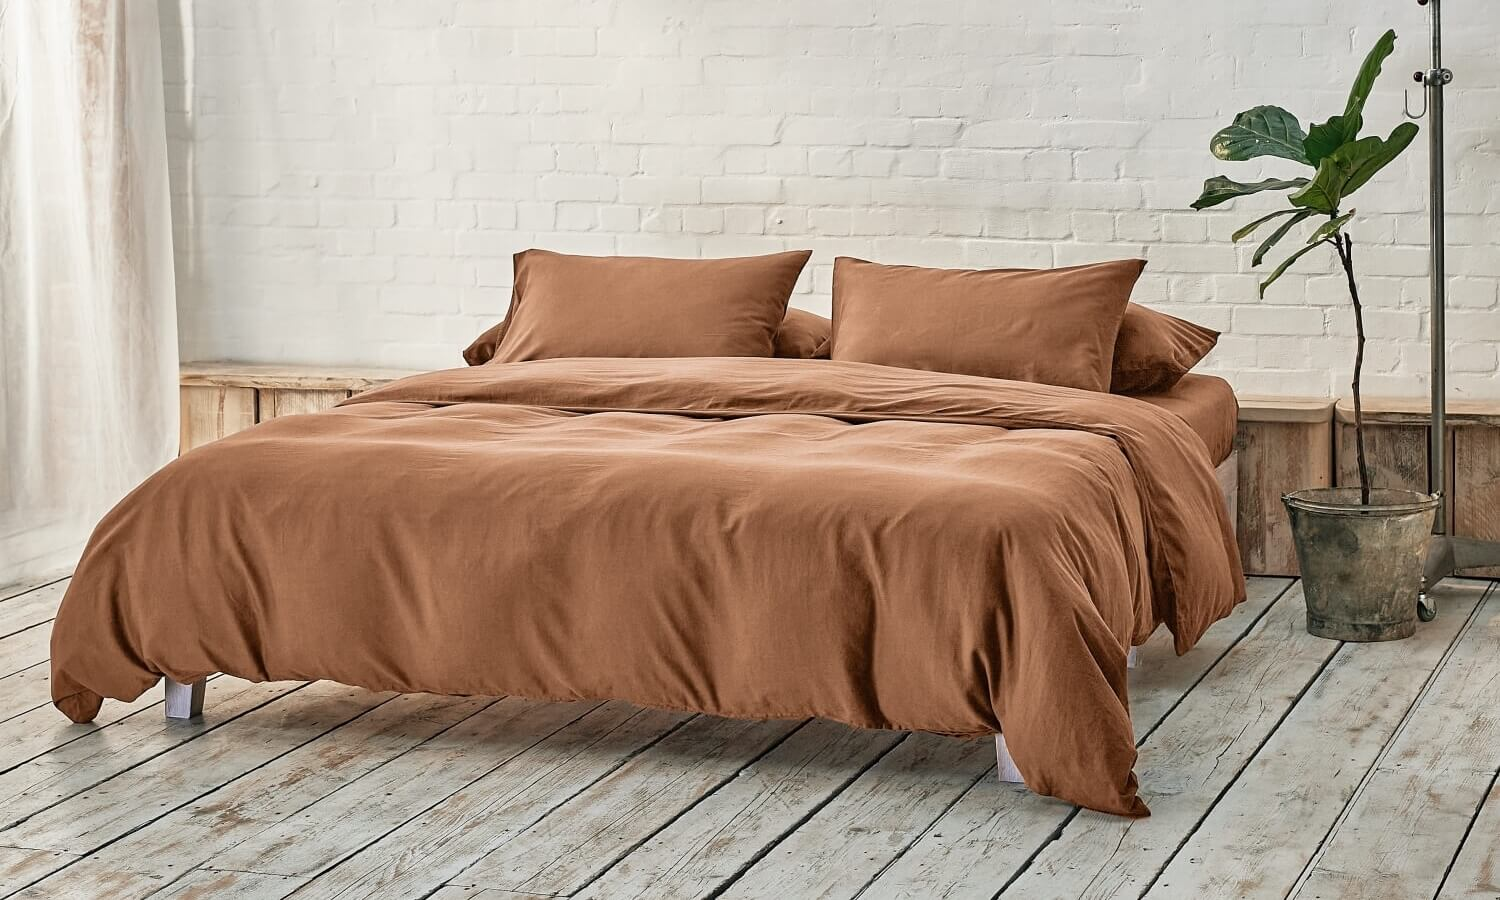 caramel brown bedding on bed in a modern room